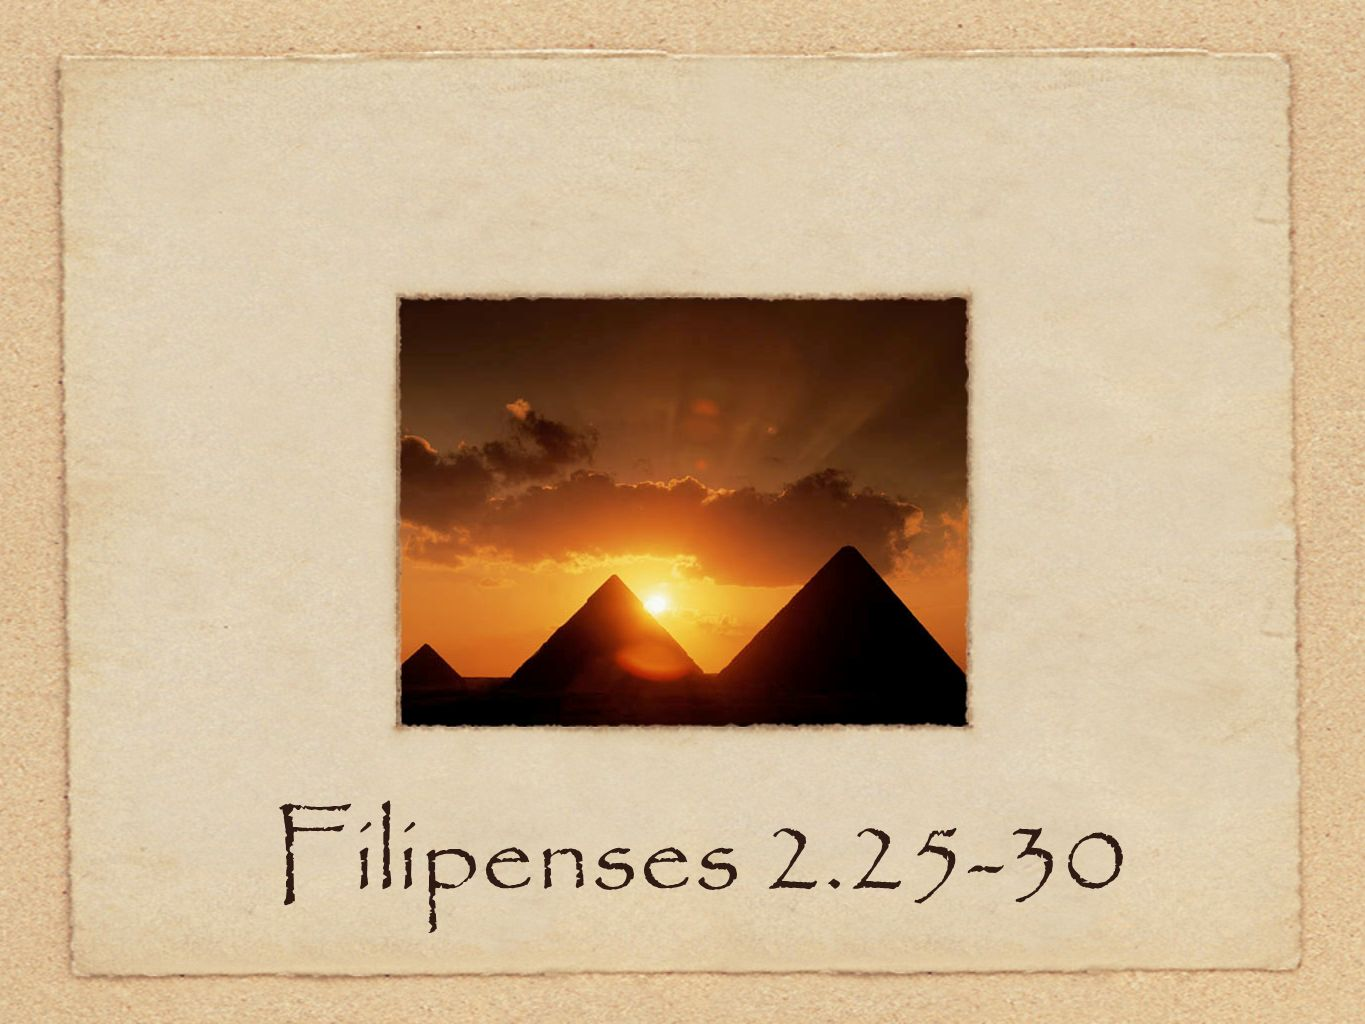 Filipenses 2.25-30